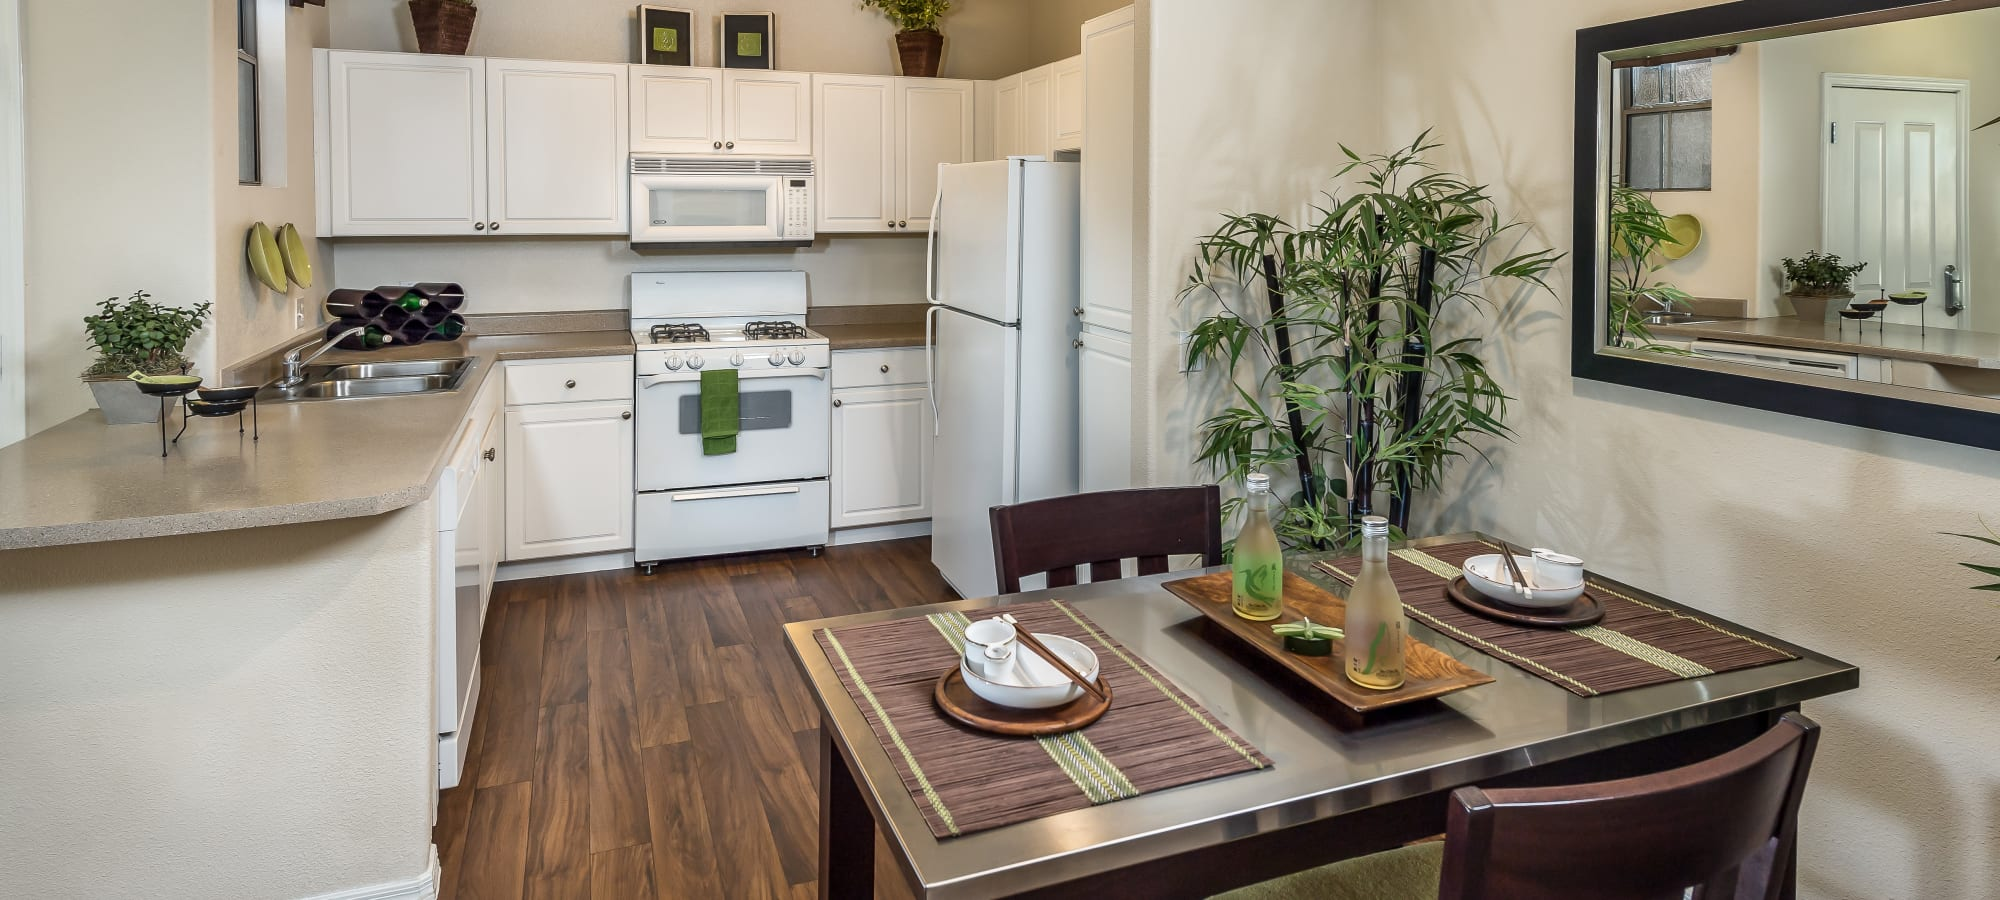 View of the modern kitchen next to the dining area of a model home at Stone Oaks in Chandler, Arizona